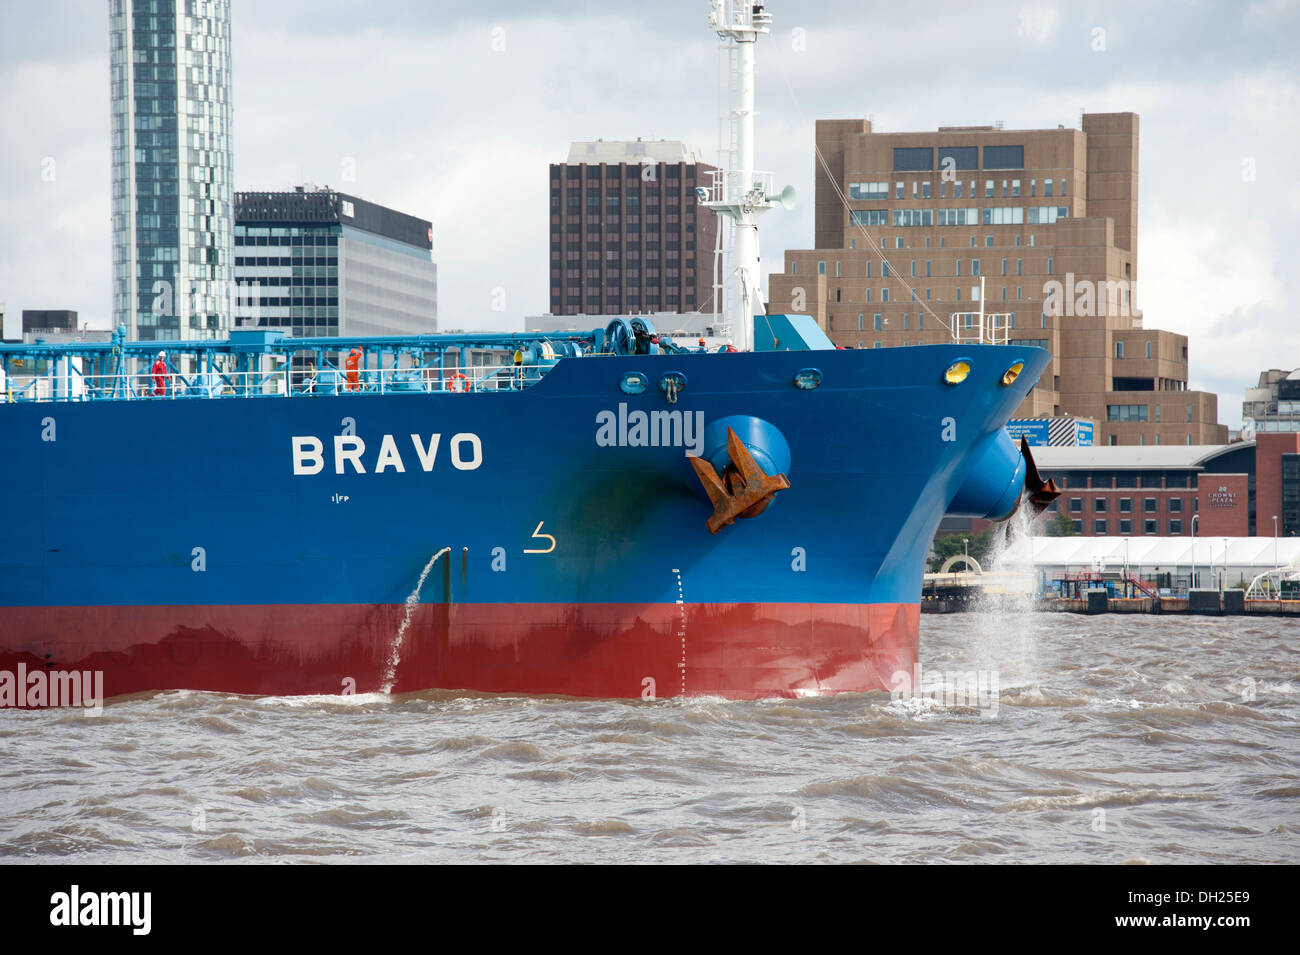 Ship Bow Prow BRAVO Well Done Congratulations - Stock Image